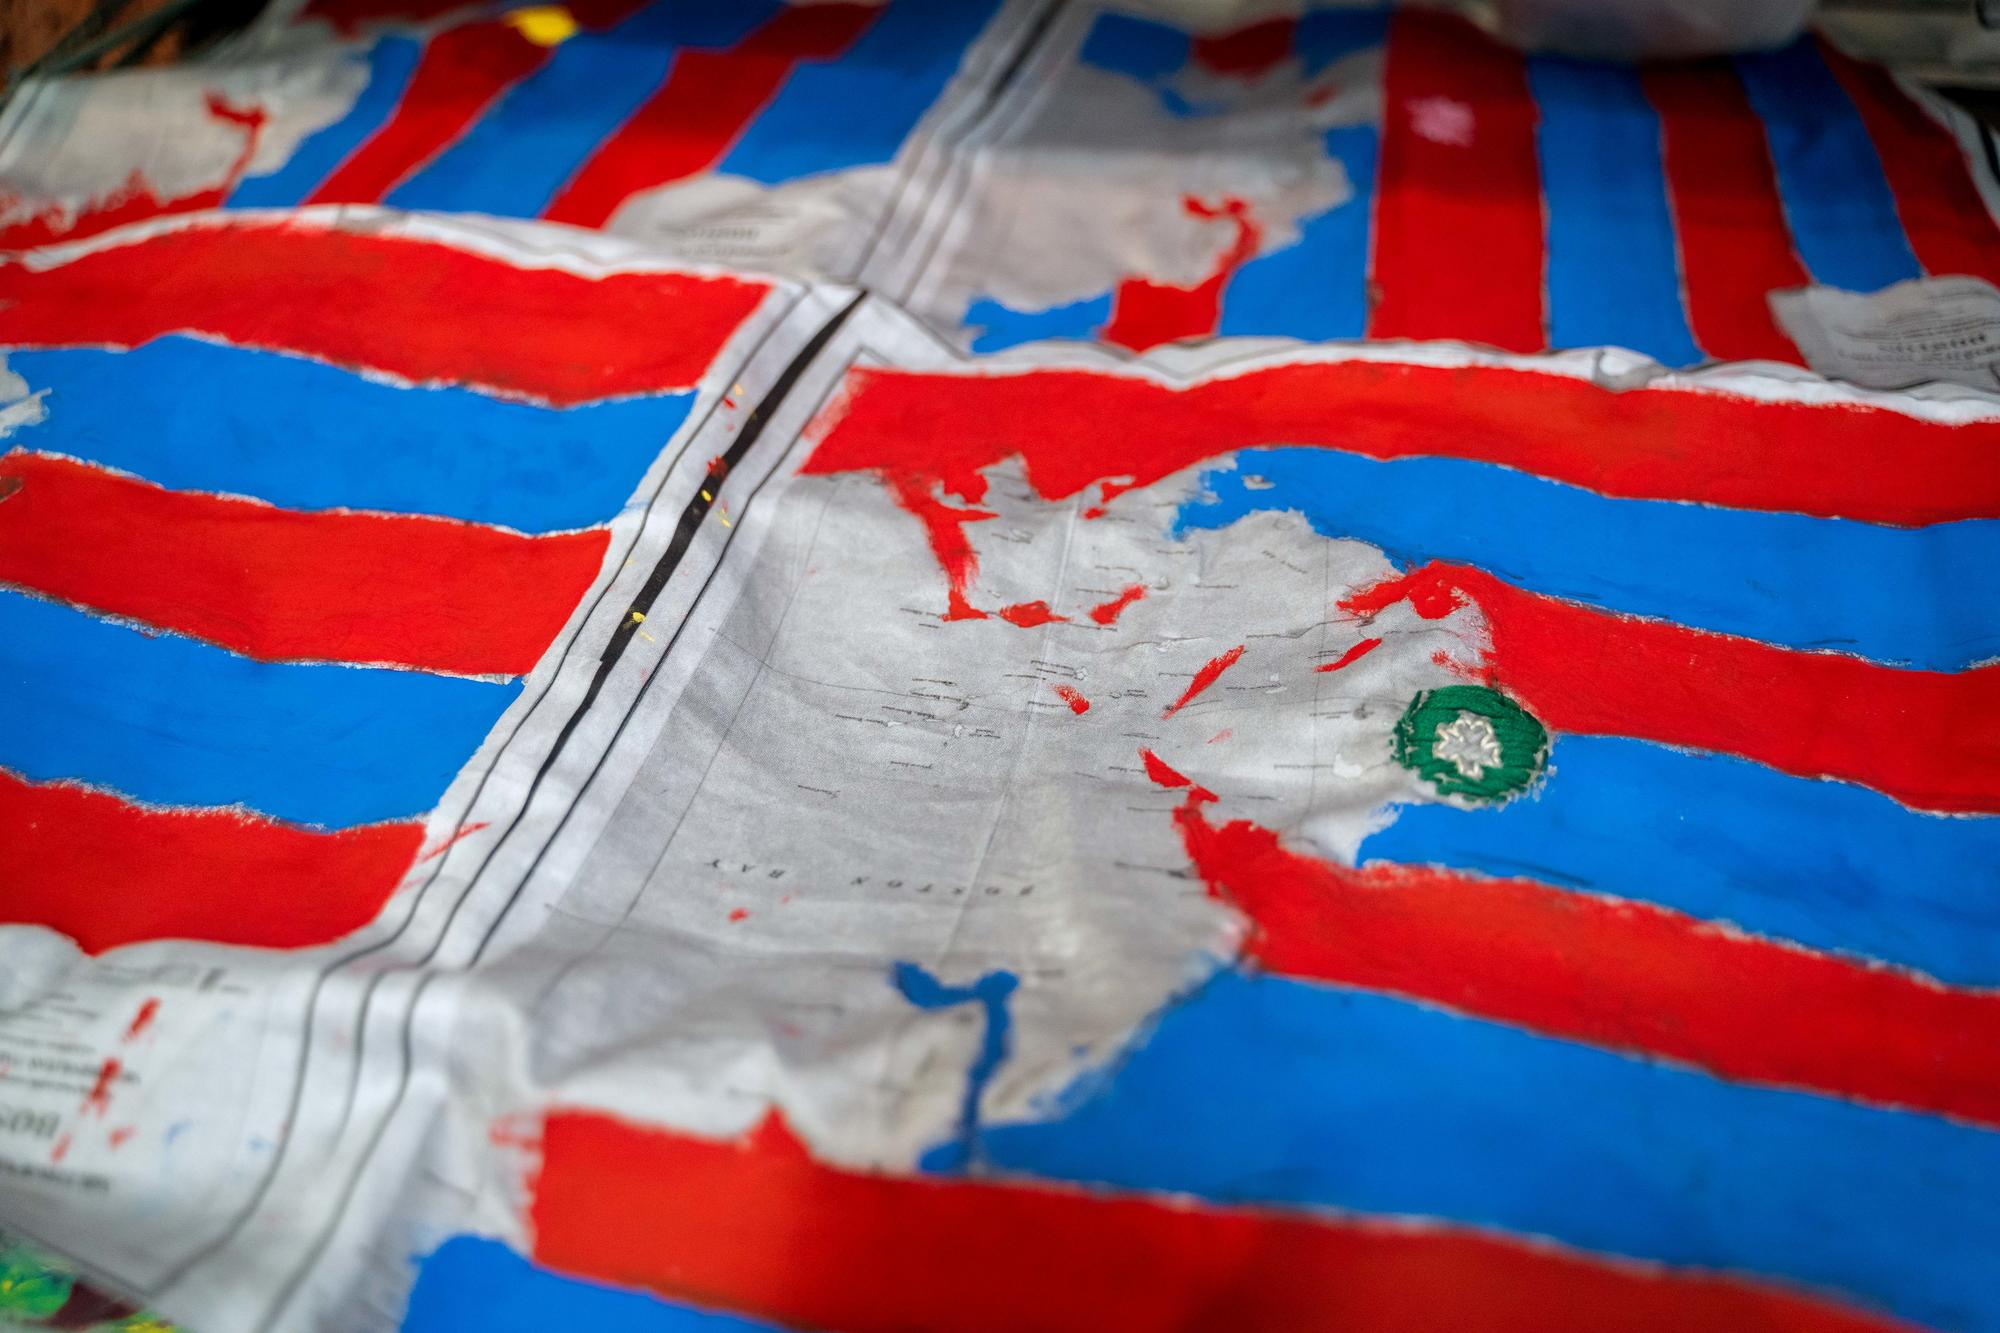 A close-up shot of a map-inspired textile with red and blue stripes obscuring the map beneath it, created by Urbano Project students.